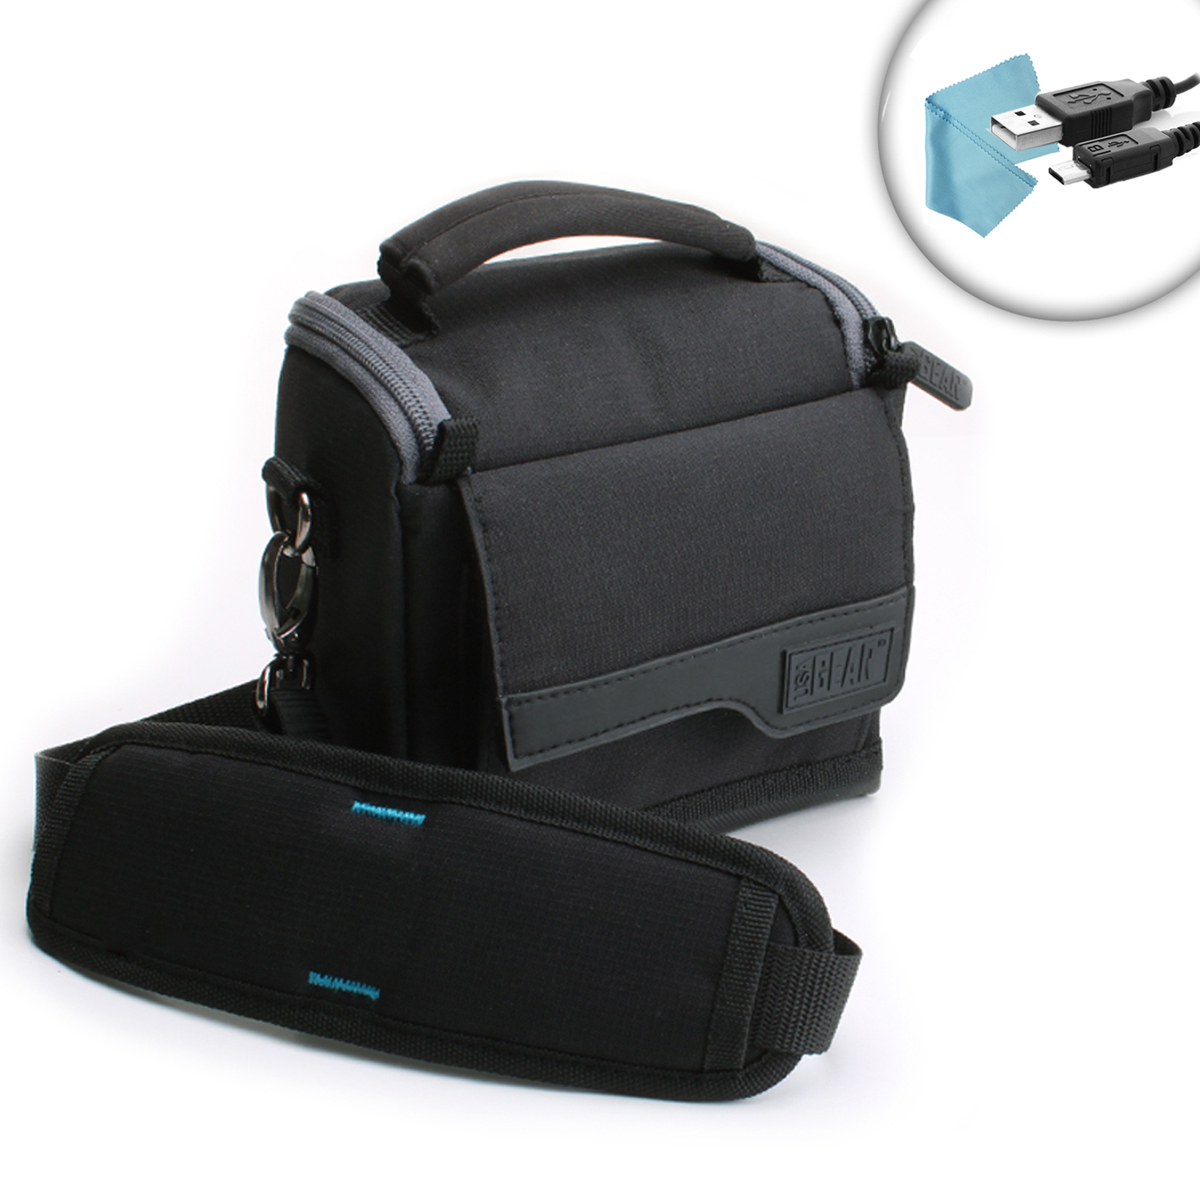 Camera Travel Pouch : Usa gear compact travel bag camera case for misc canon